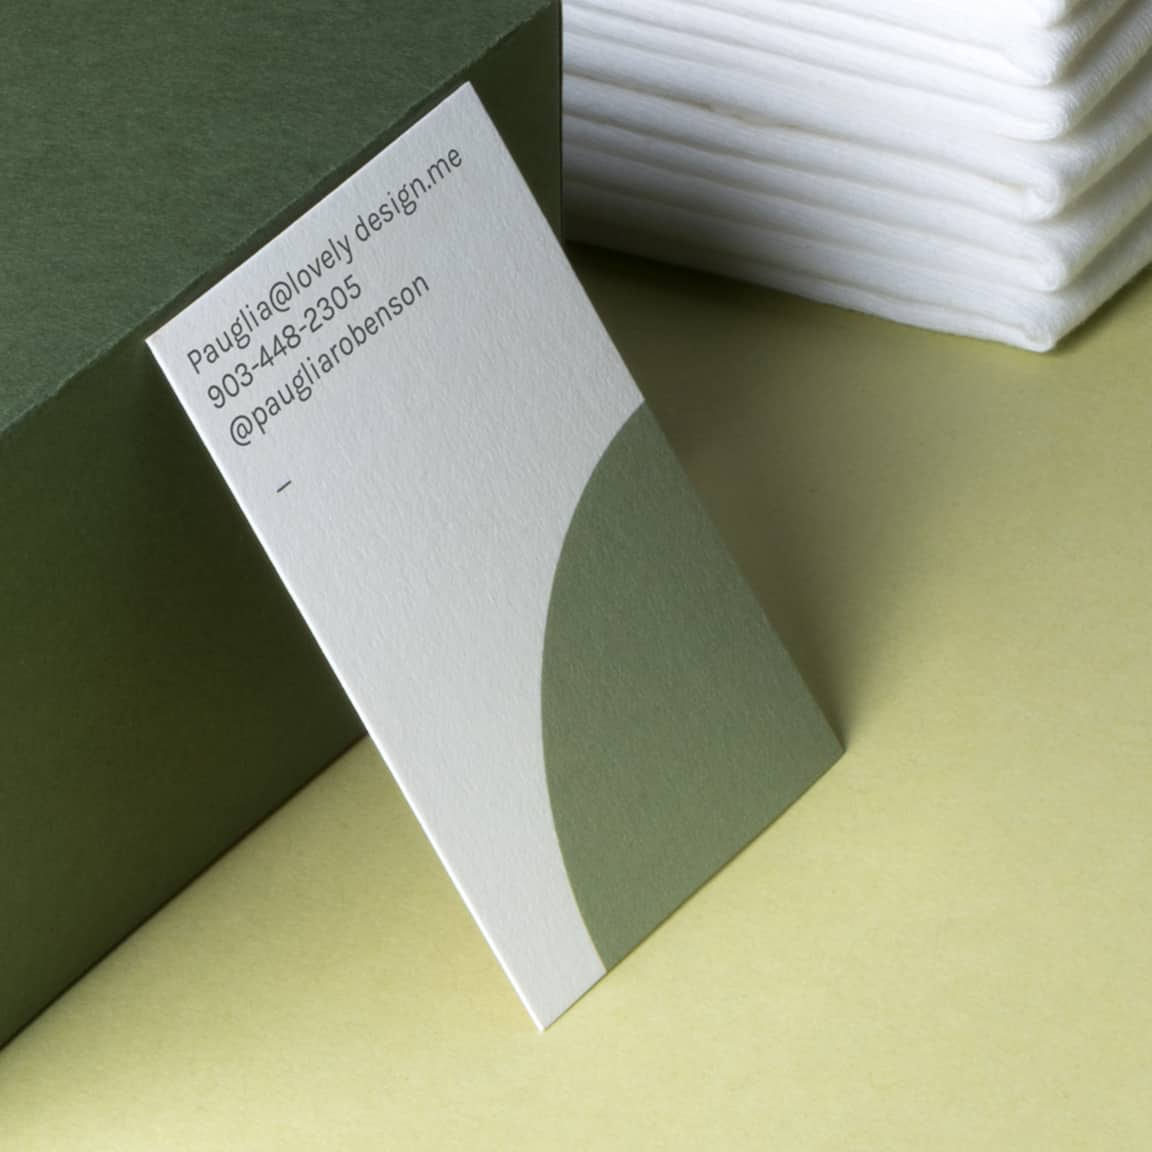 18pt, 100% recycled paper Size: Standard 2.0″ x 3.5″